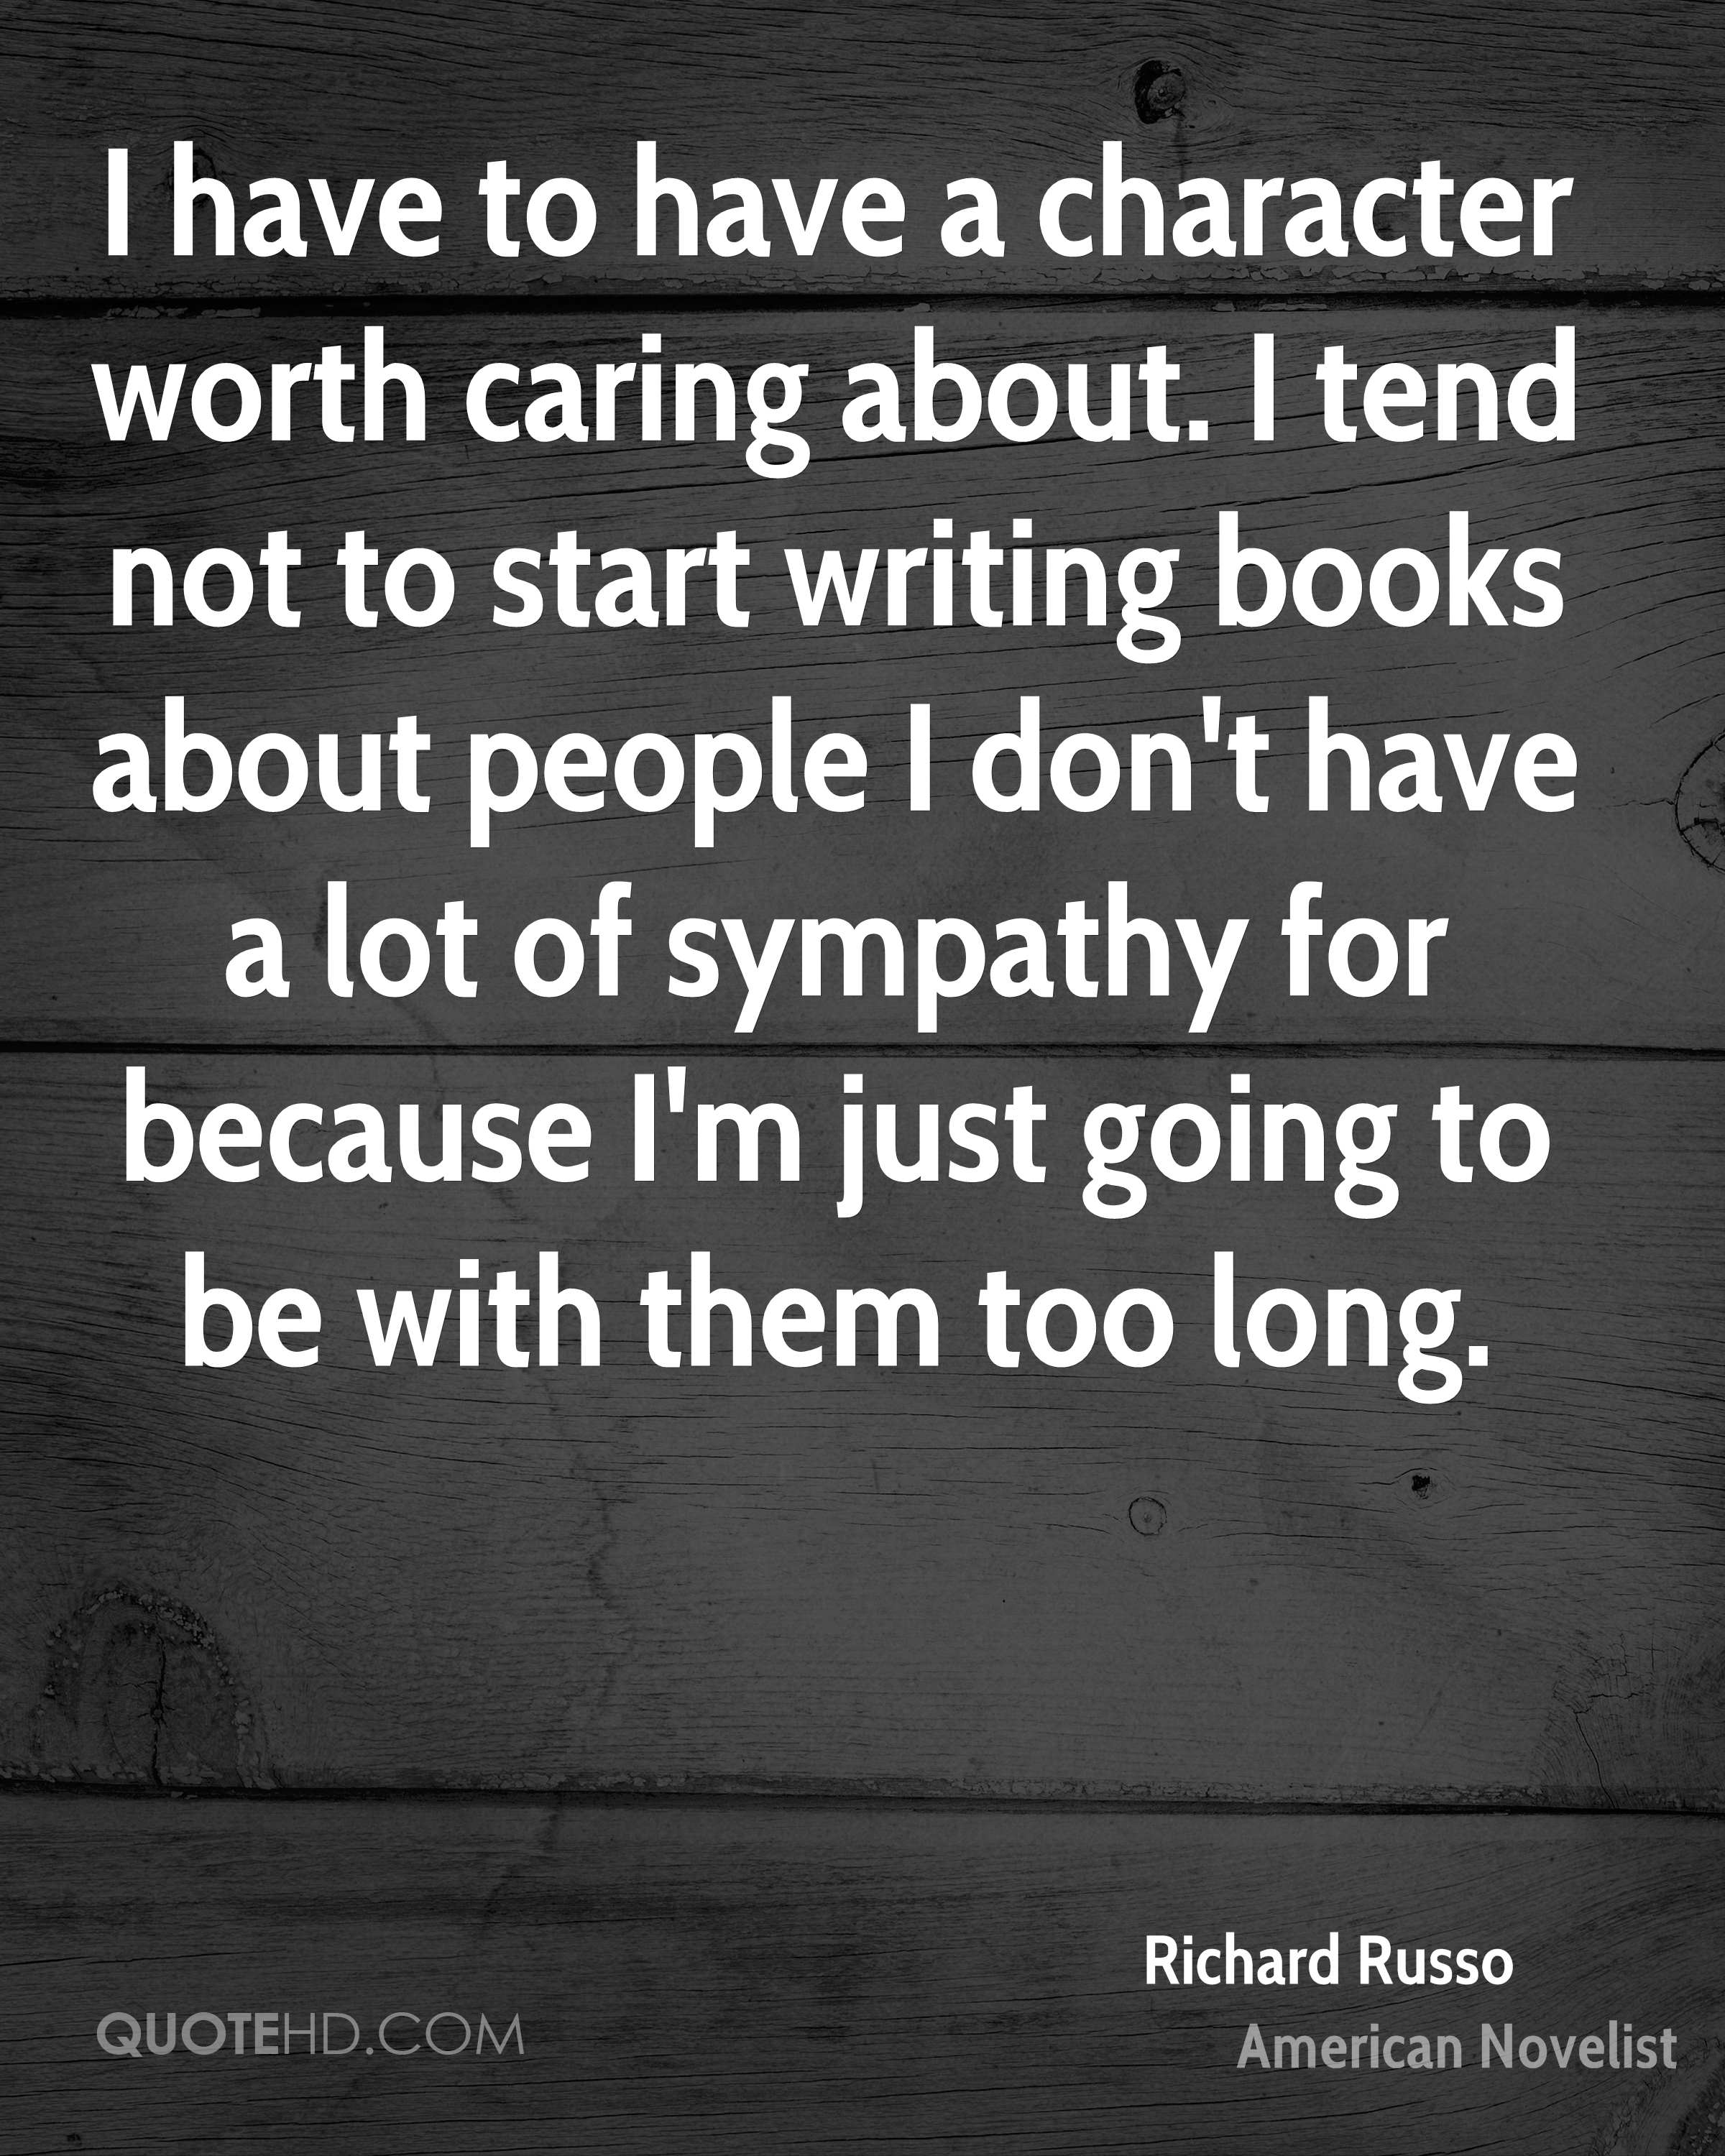 I have to have a character worth caring about. I tend not to start writing books about people I don't have a lot of sympathy for because I'm just going to be with them too long.